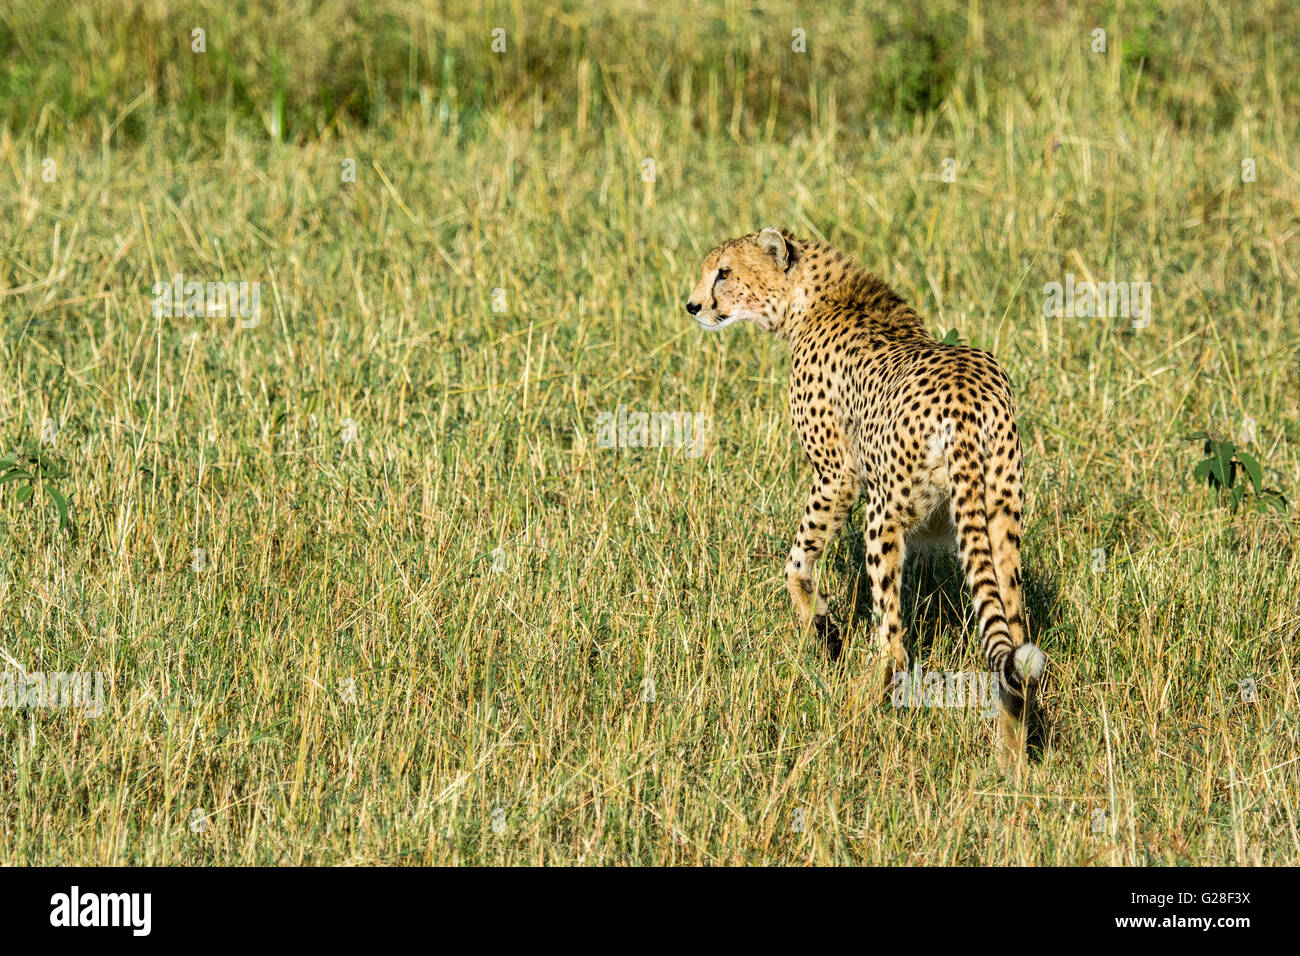 Solitary Adult Wild Cheetah, Acinonyx  jubatus, Walking, Looking for prey, Masai Mara National Reserve, Kenya, East - Stock Image